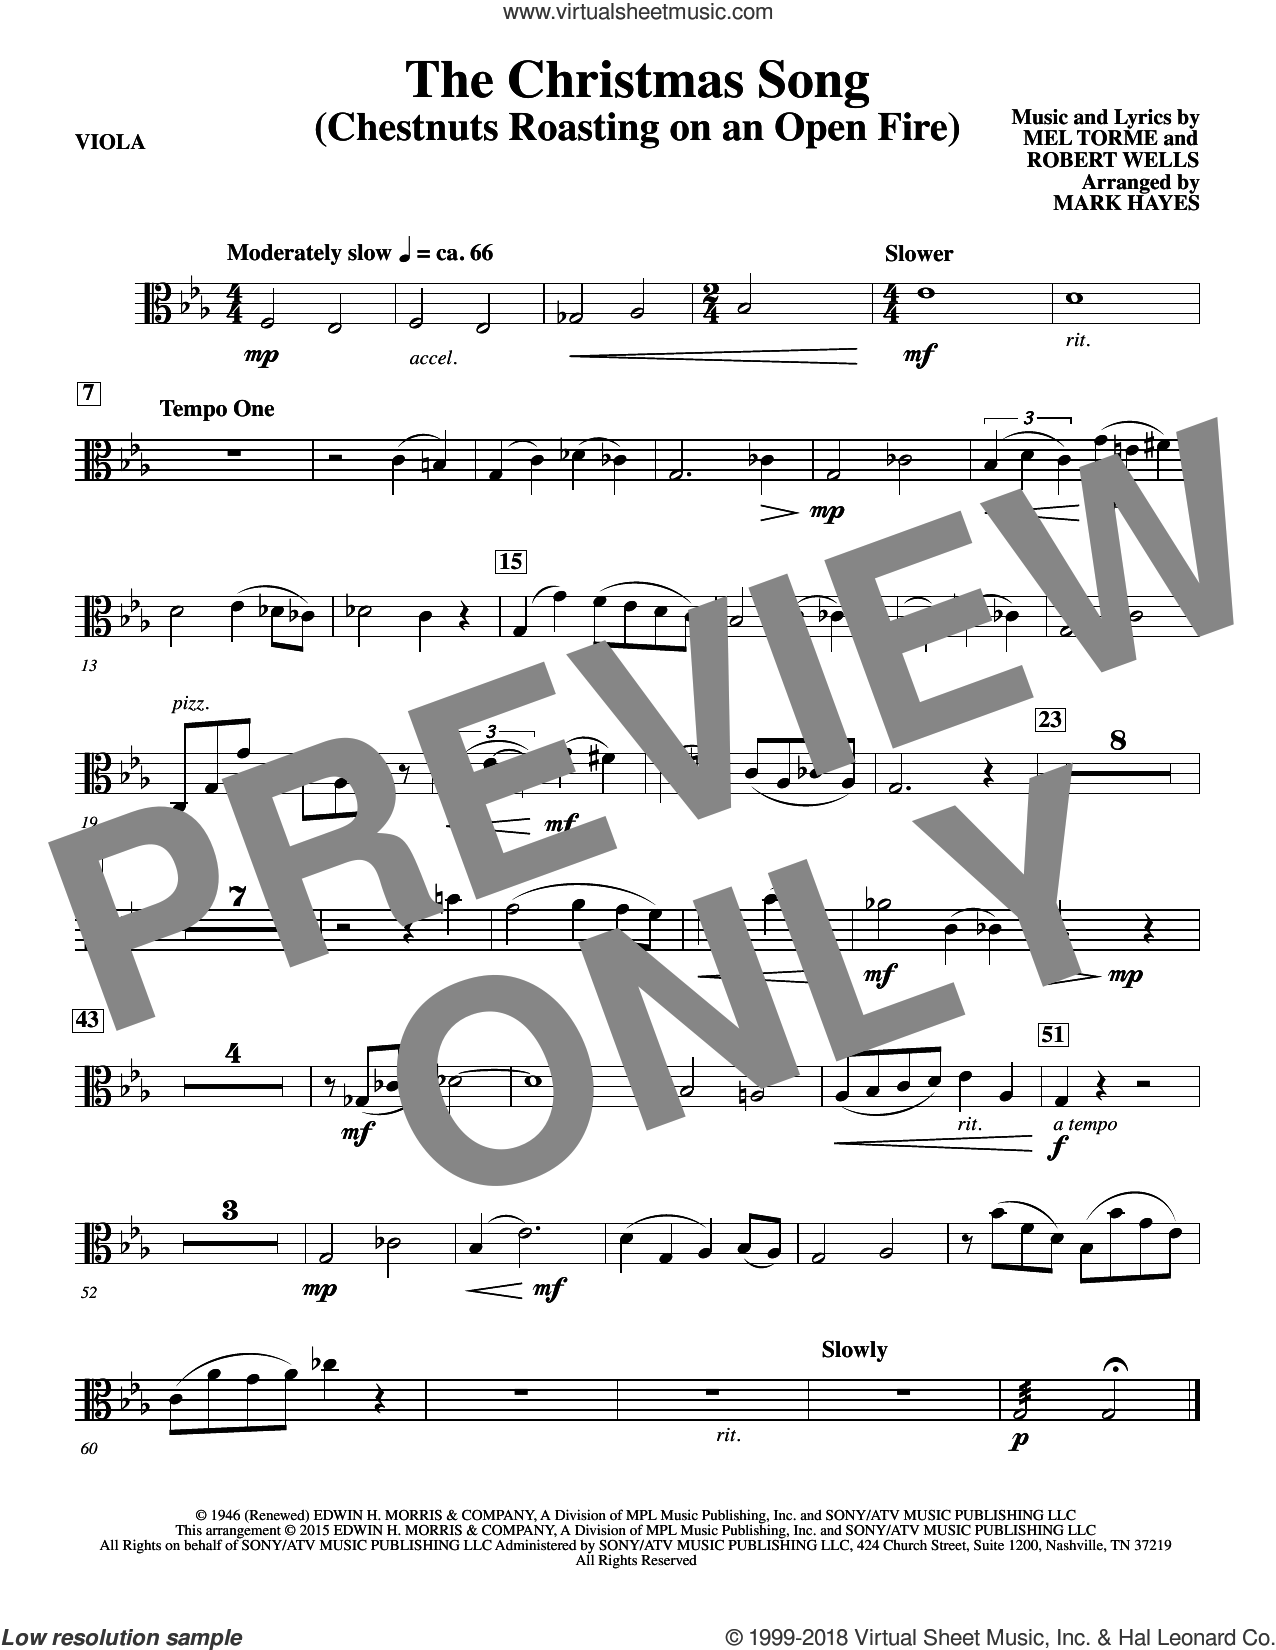 The Christmas Song (Chestnuts Roasting On An Open Fire) sheet music for orchestra/band (viola) by Mel Torme, Mark Hayes, Clay Crosse, King Cole Trio, Nat Cole with N. Riddle Orch., Mel Torme and Robert Wells, intermediate skill level